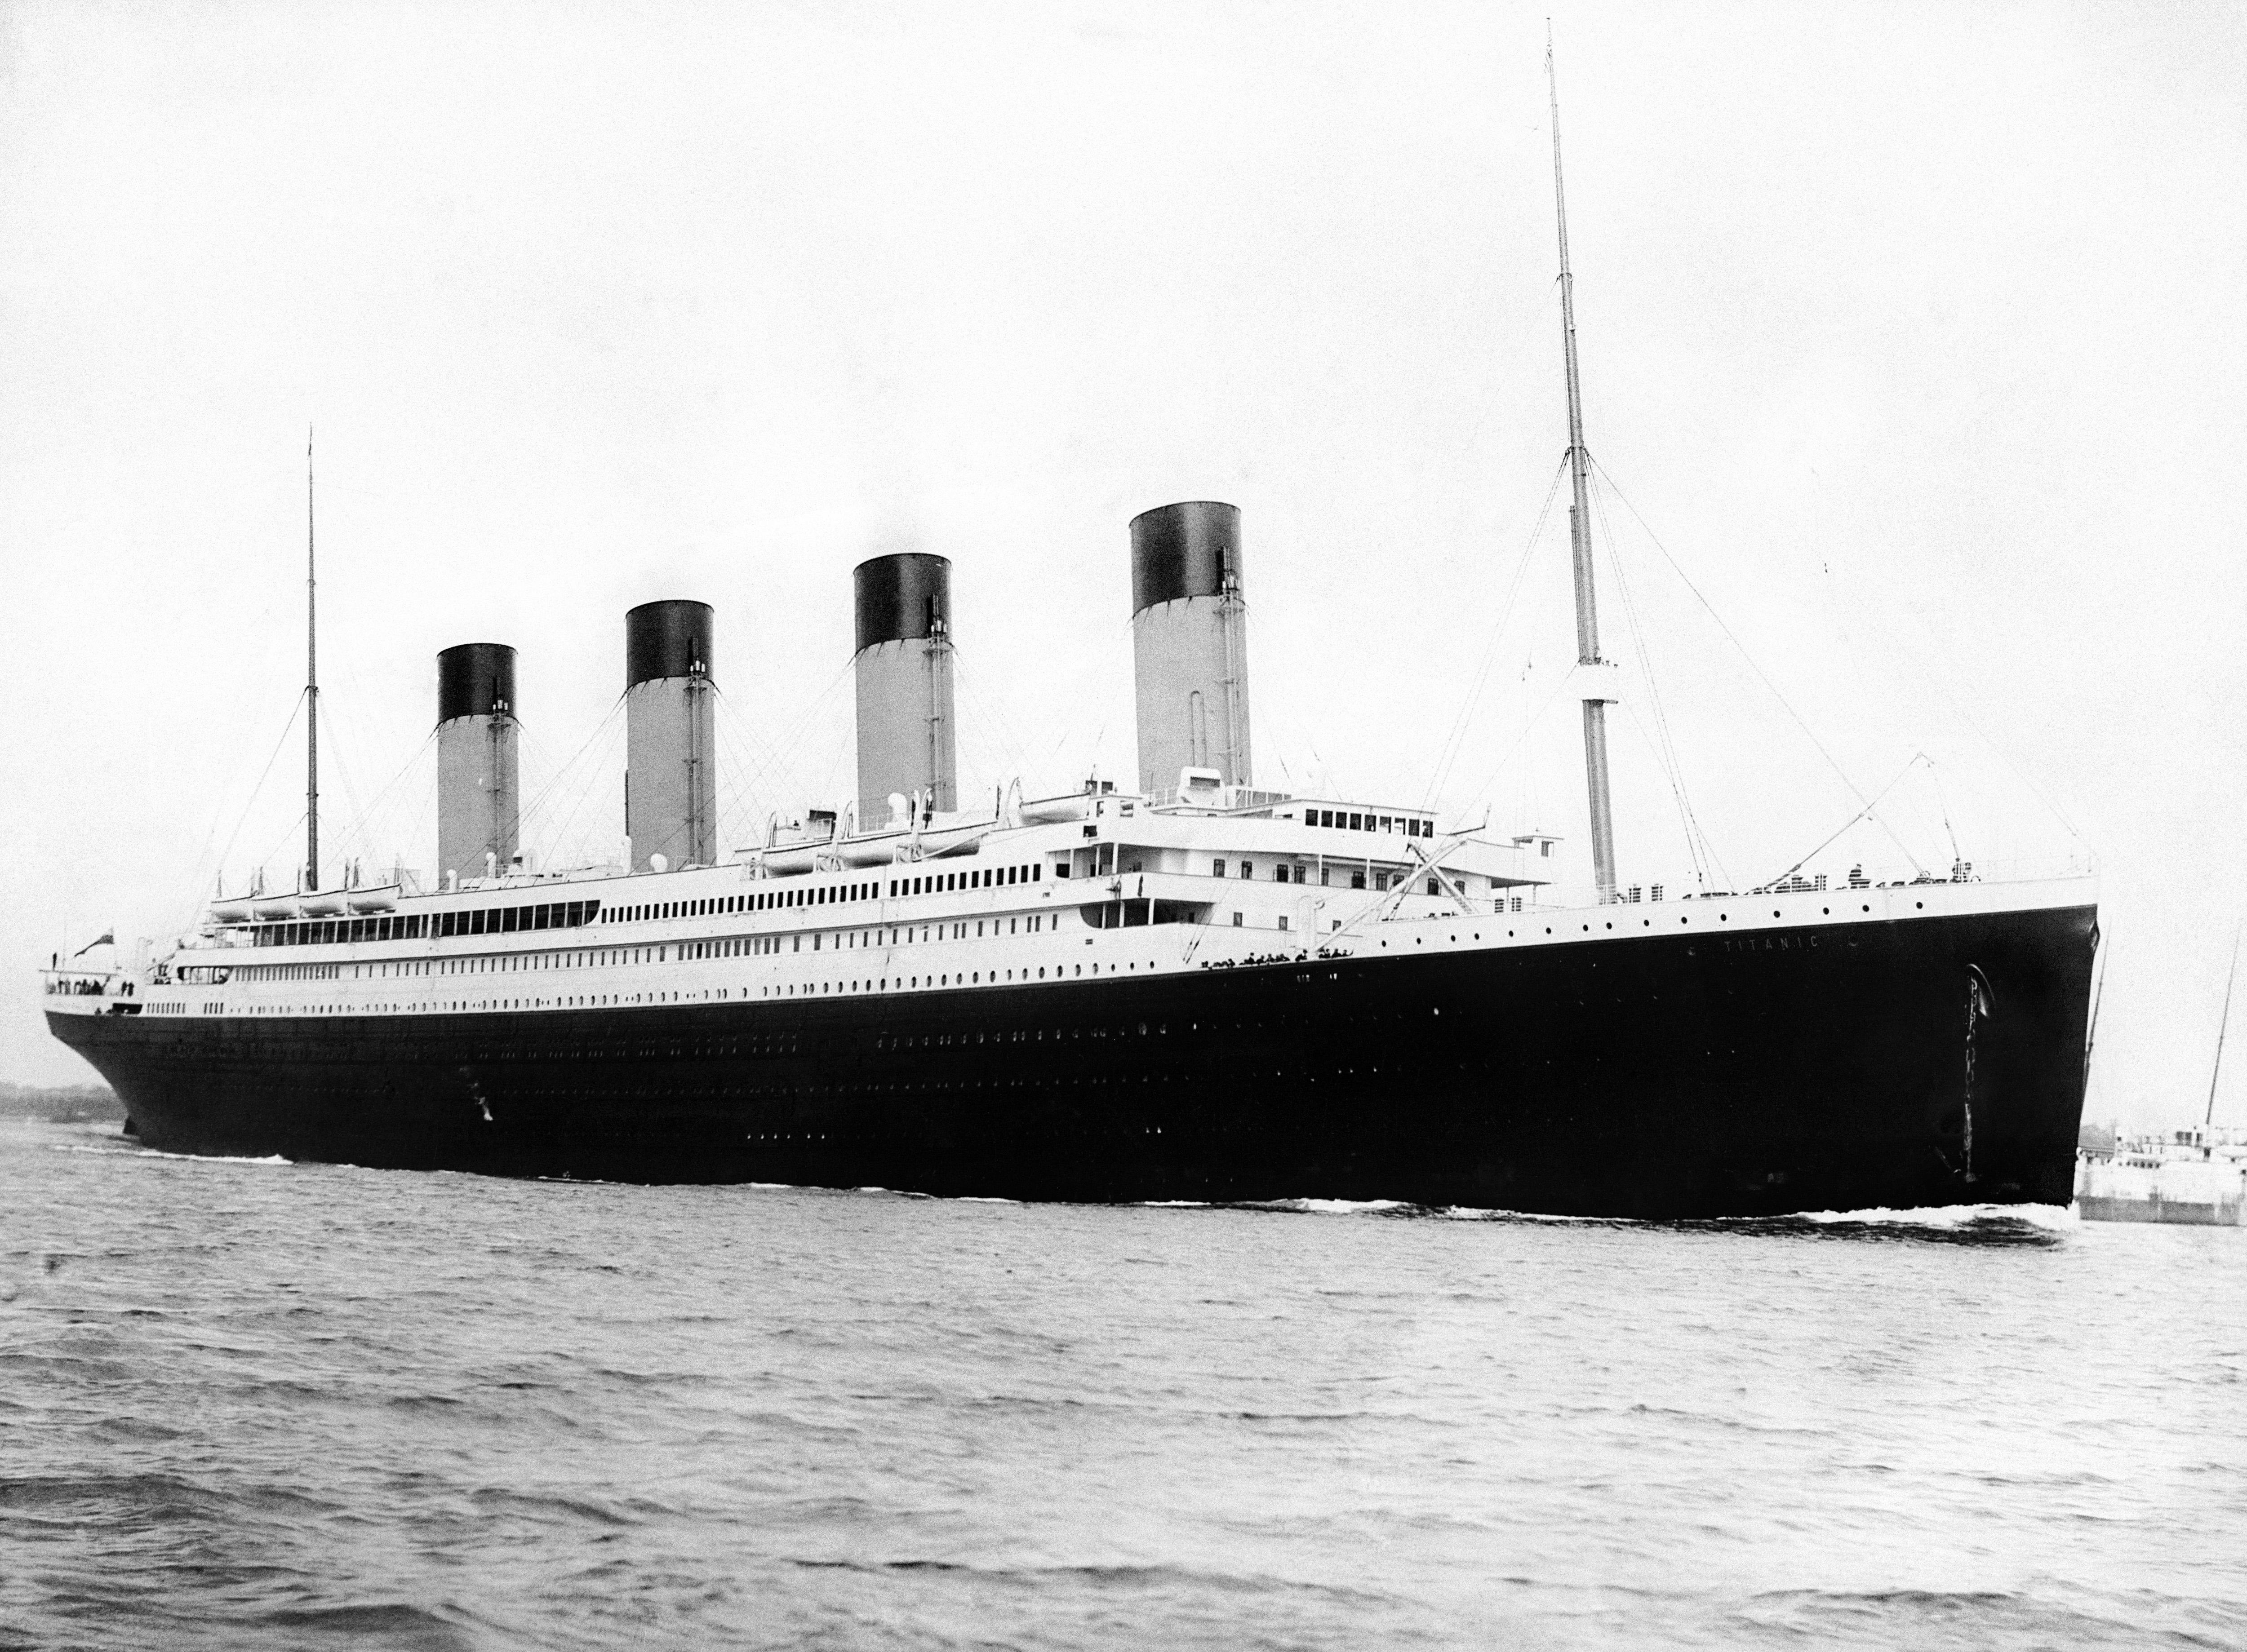 Titanic sinking anniversary. File photo c1912 of the RMS Titanic. Issue date date: Tuesday December 27, 2011. The 100th anniversary of the sinking of the doomed liner takes place next year on April 15th. 1,517 people died when the passenger liner struck an iceberg on her maiden voyage. See PA story SEA Titanic. Photo credit should read: PA Wire URN:12362758 (Press Association via AP Images)